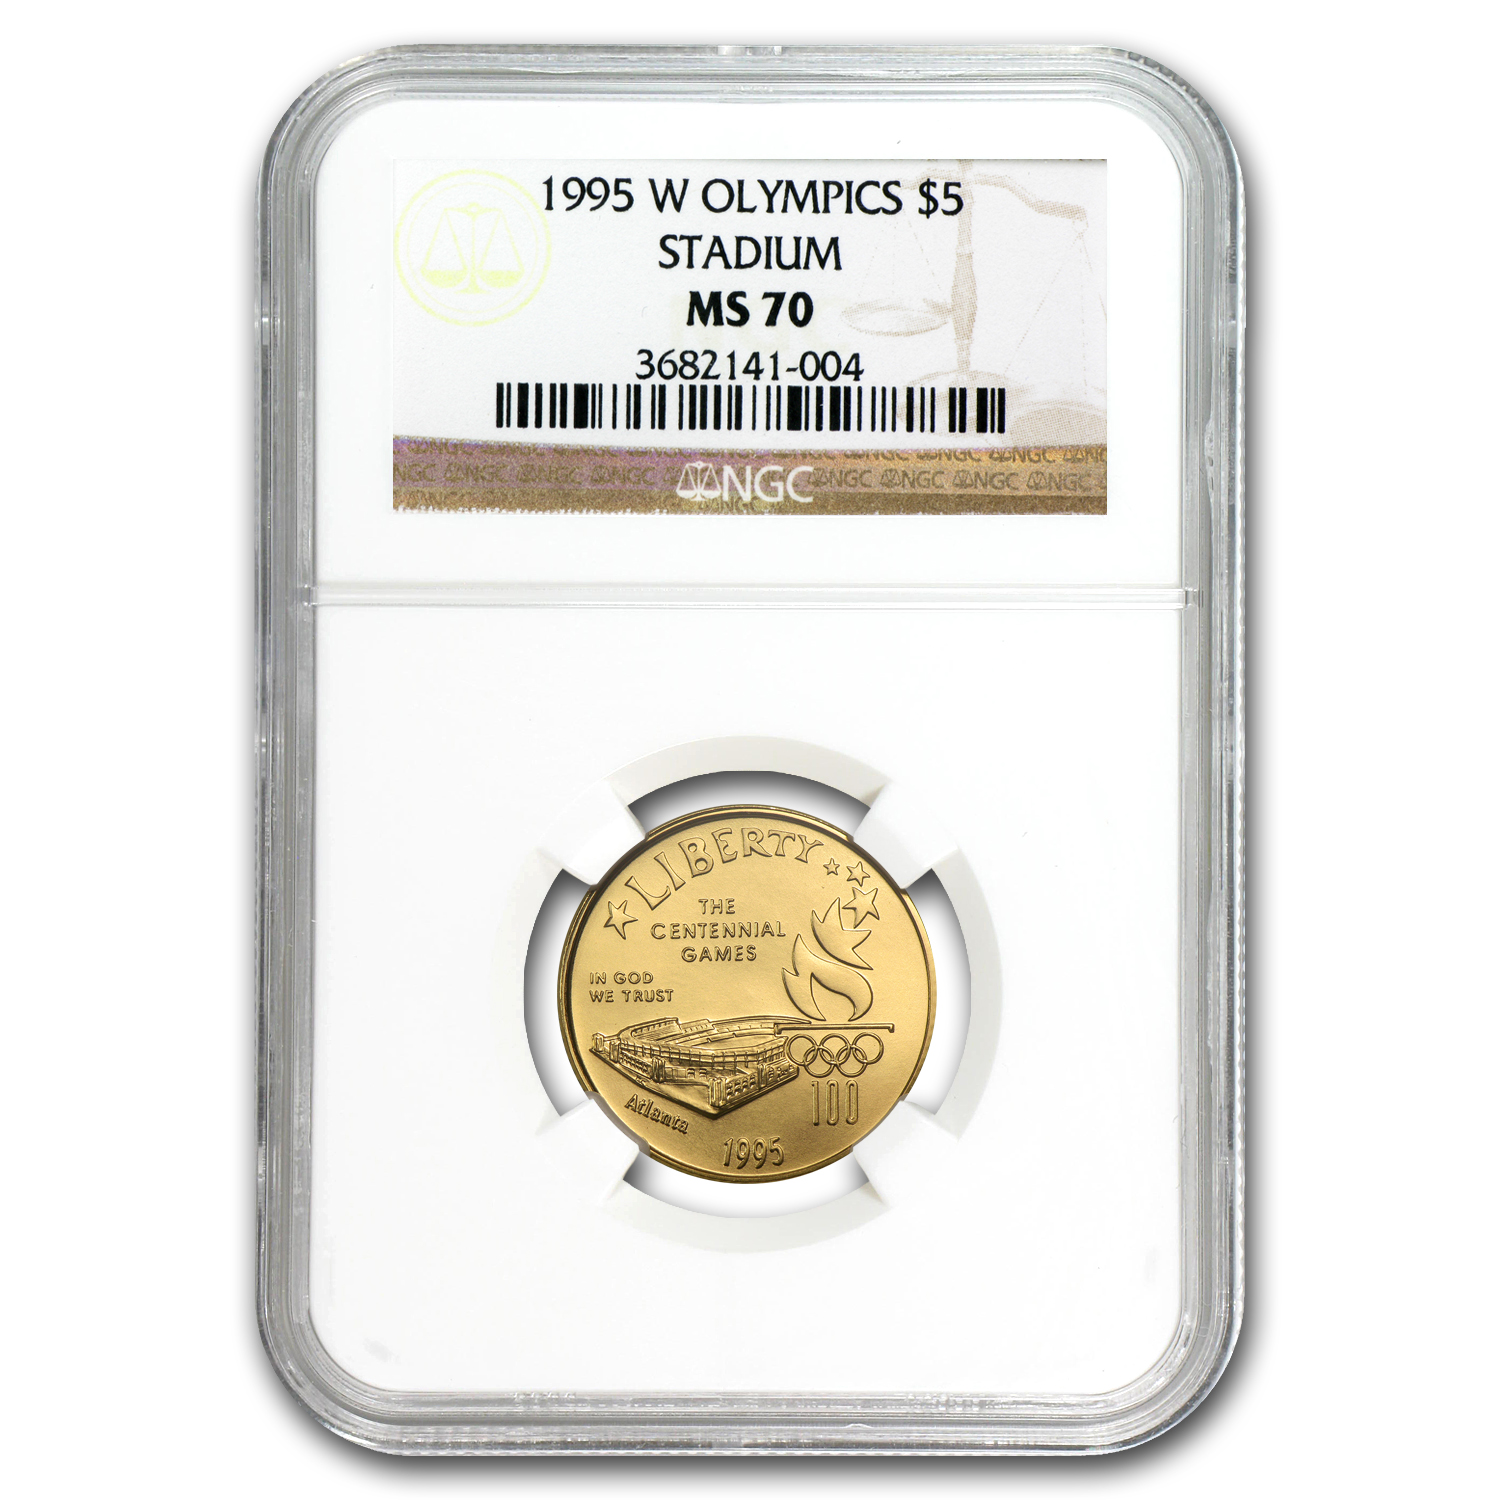 1995-W $5 Gold Commemorative Olympic Stadium MS-70 NGC